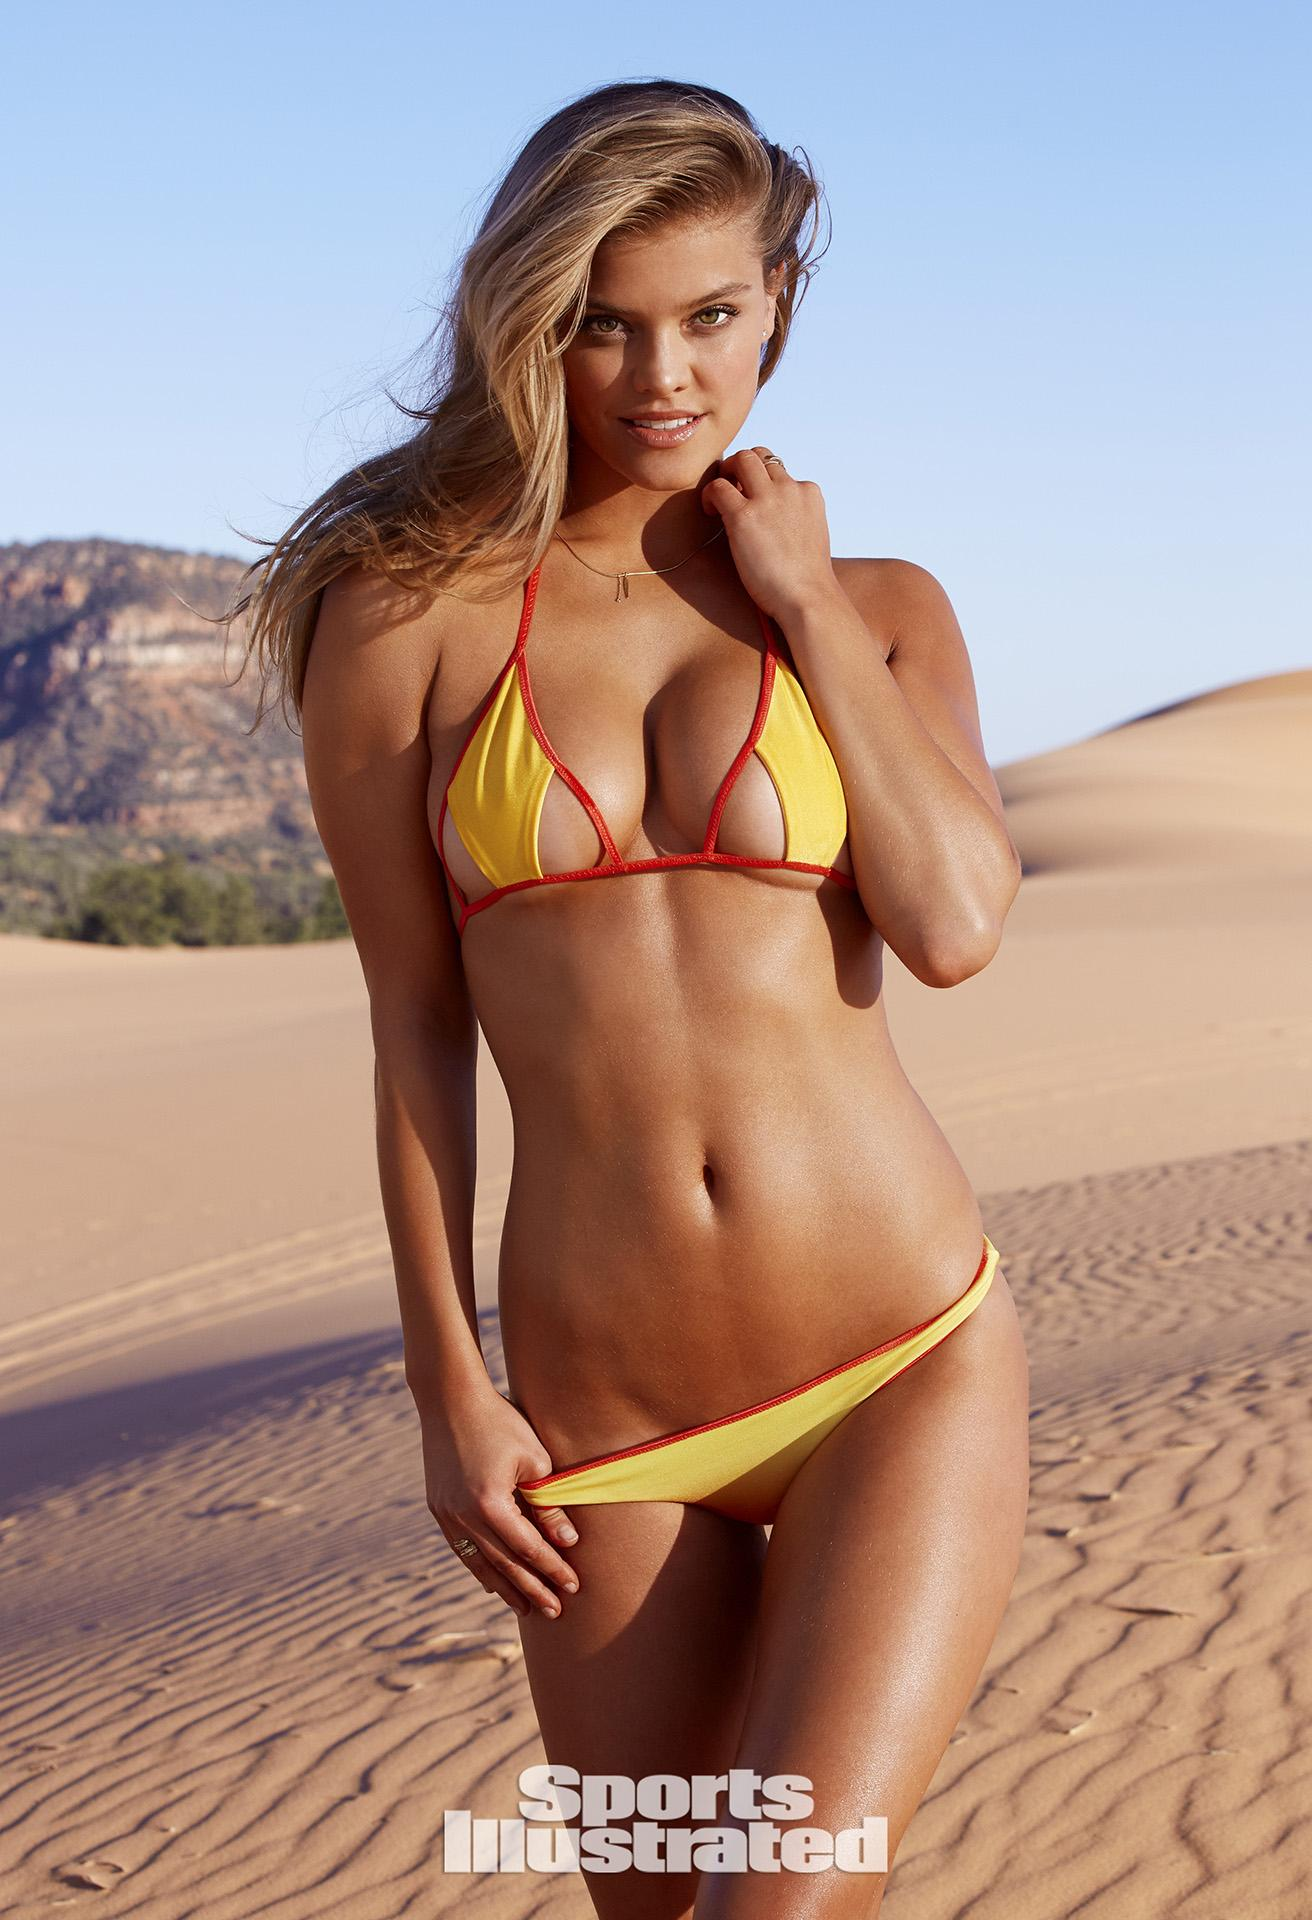 Nina agdal swimsuit photos sports illustrated swimsuit 2015 for Best online photo gallery